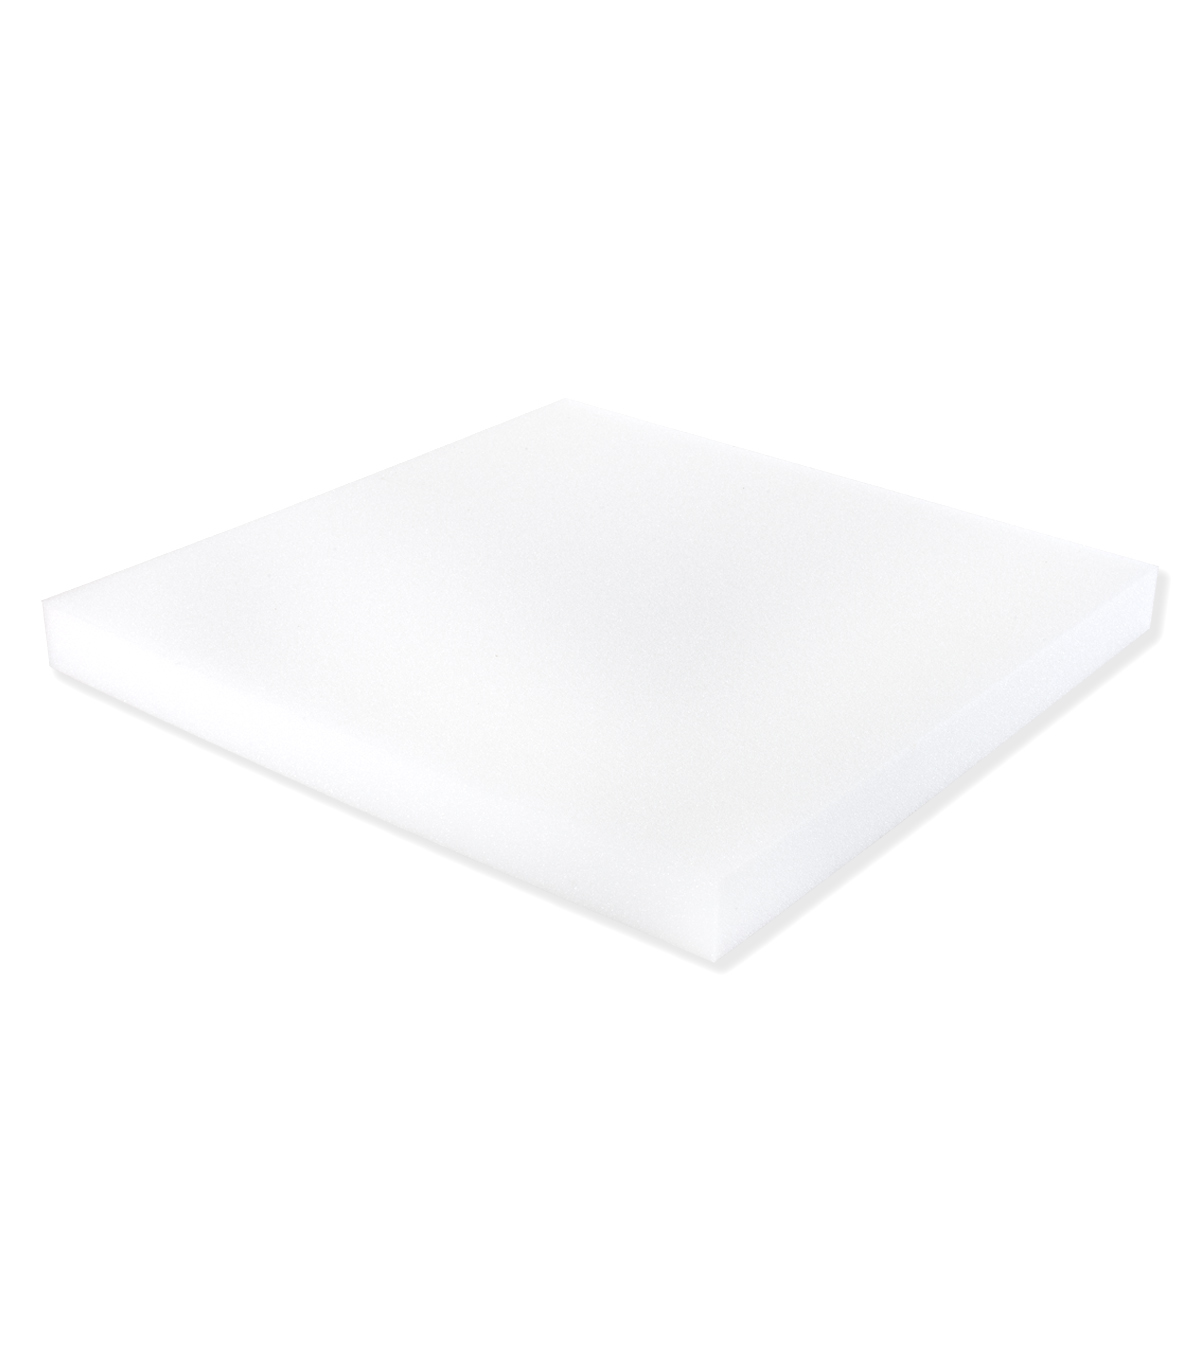 Airtex Regular Density Chair Pad-22\u0022x22\u0022x2\u0022